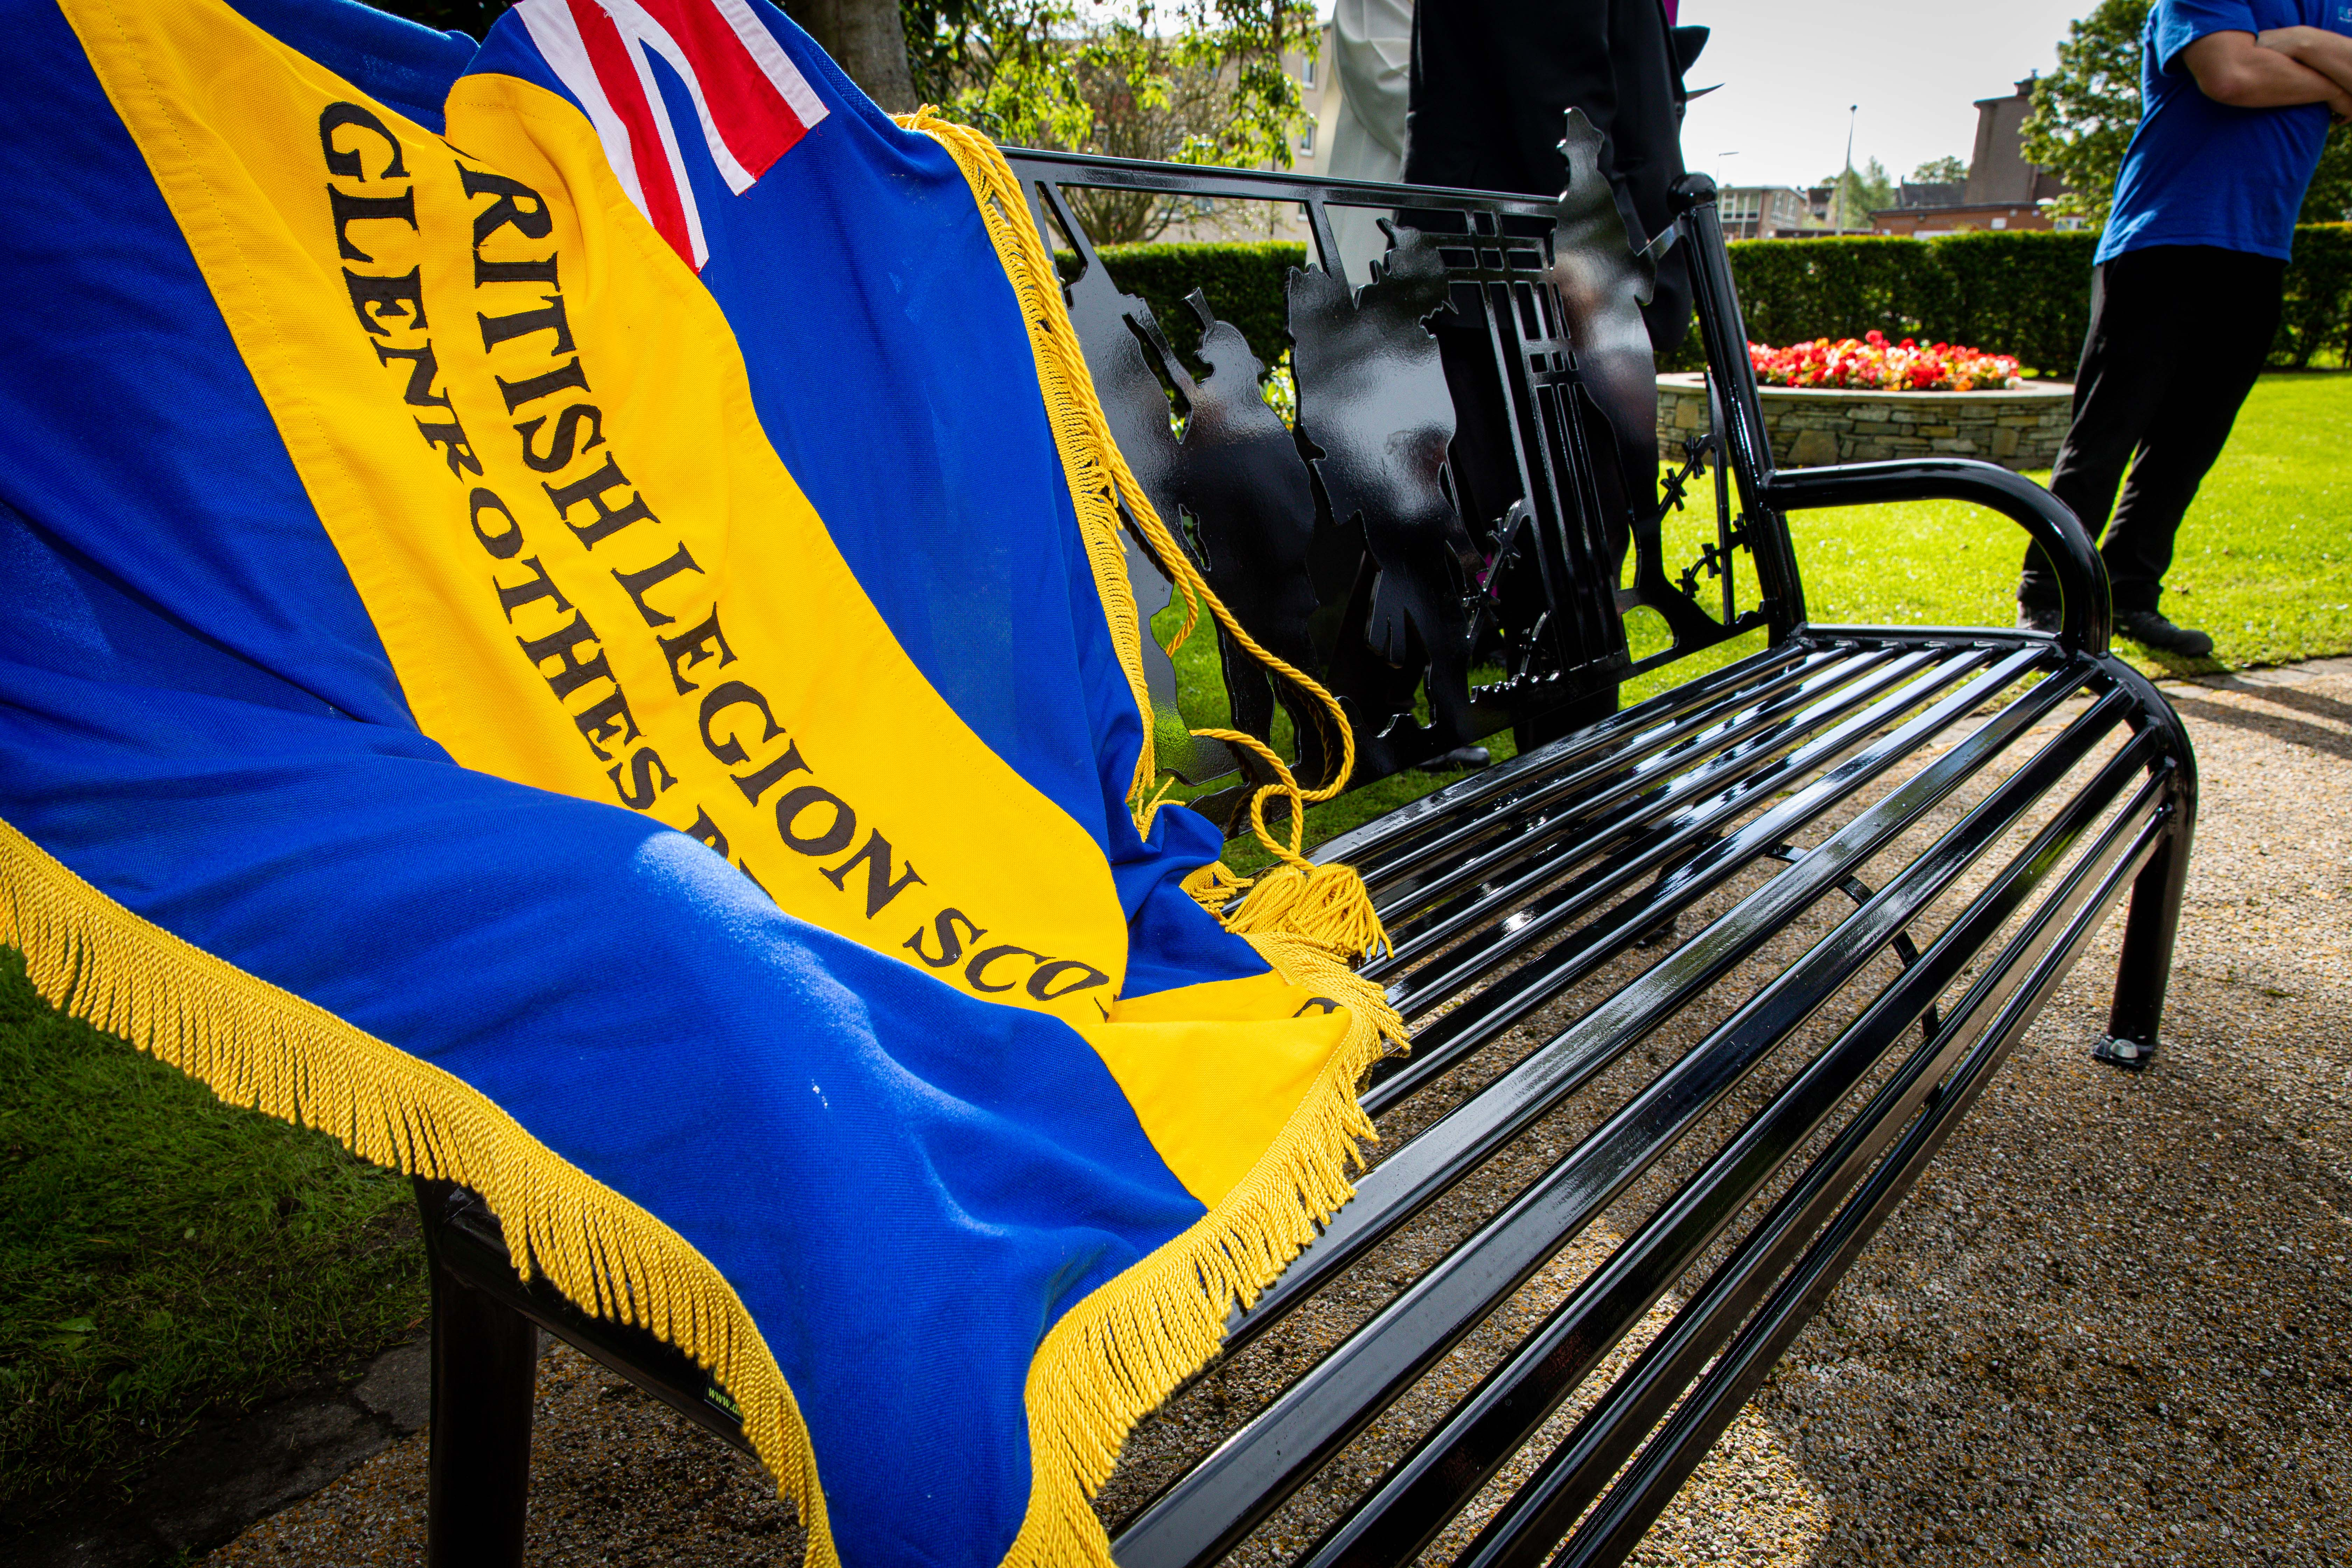 The latest addition to Glenrothes war memorial gardens.